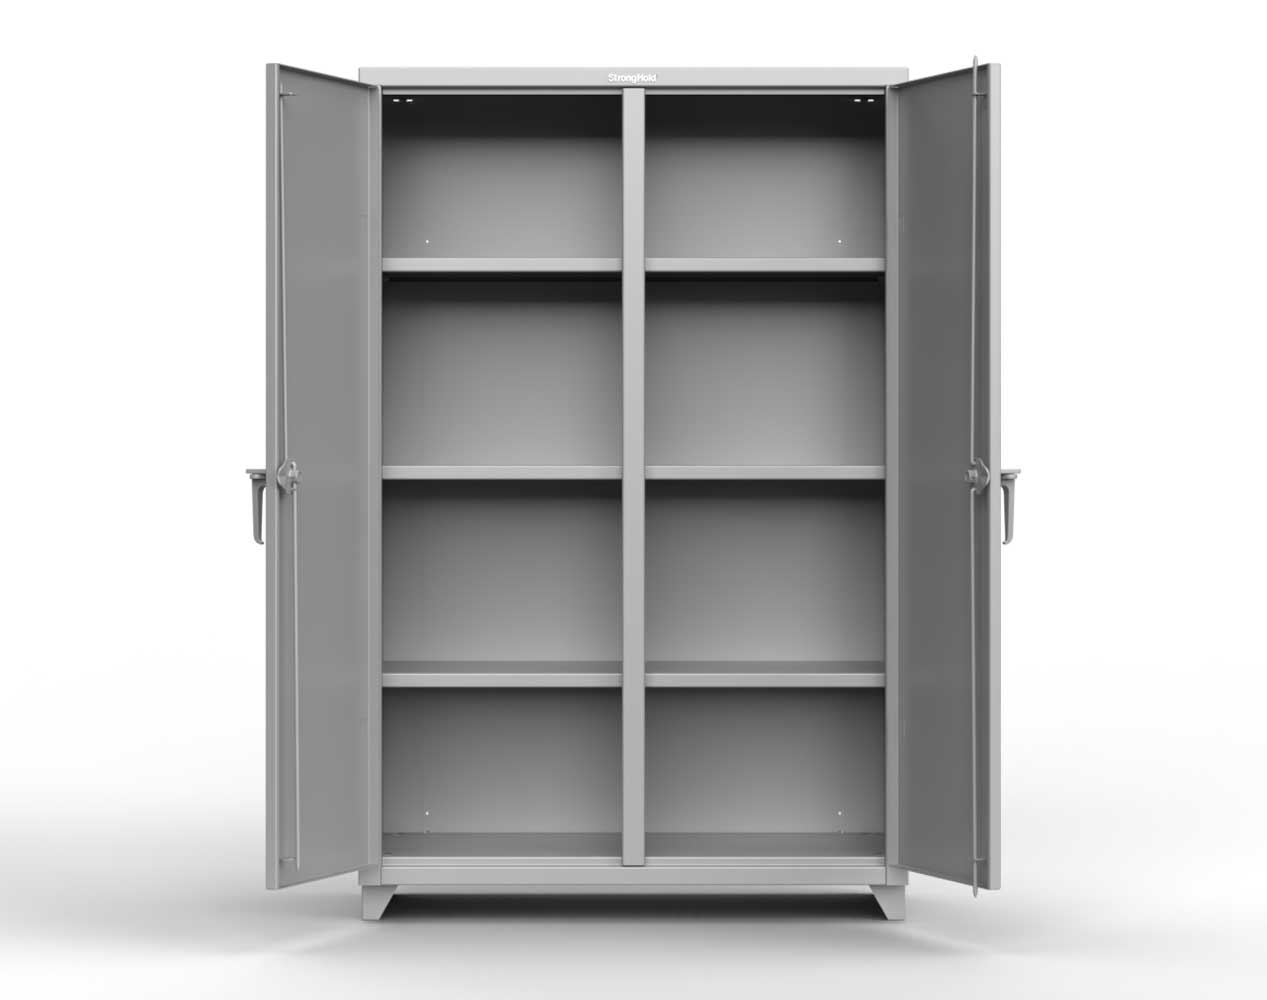 Extra Heavy Duty 14 GA Double Shift Cabinet with 6 Shelves – 36 In. W x 24 In. D x 75 In. H